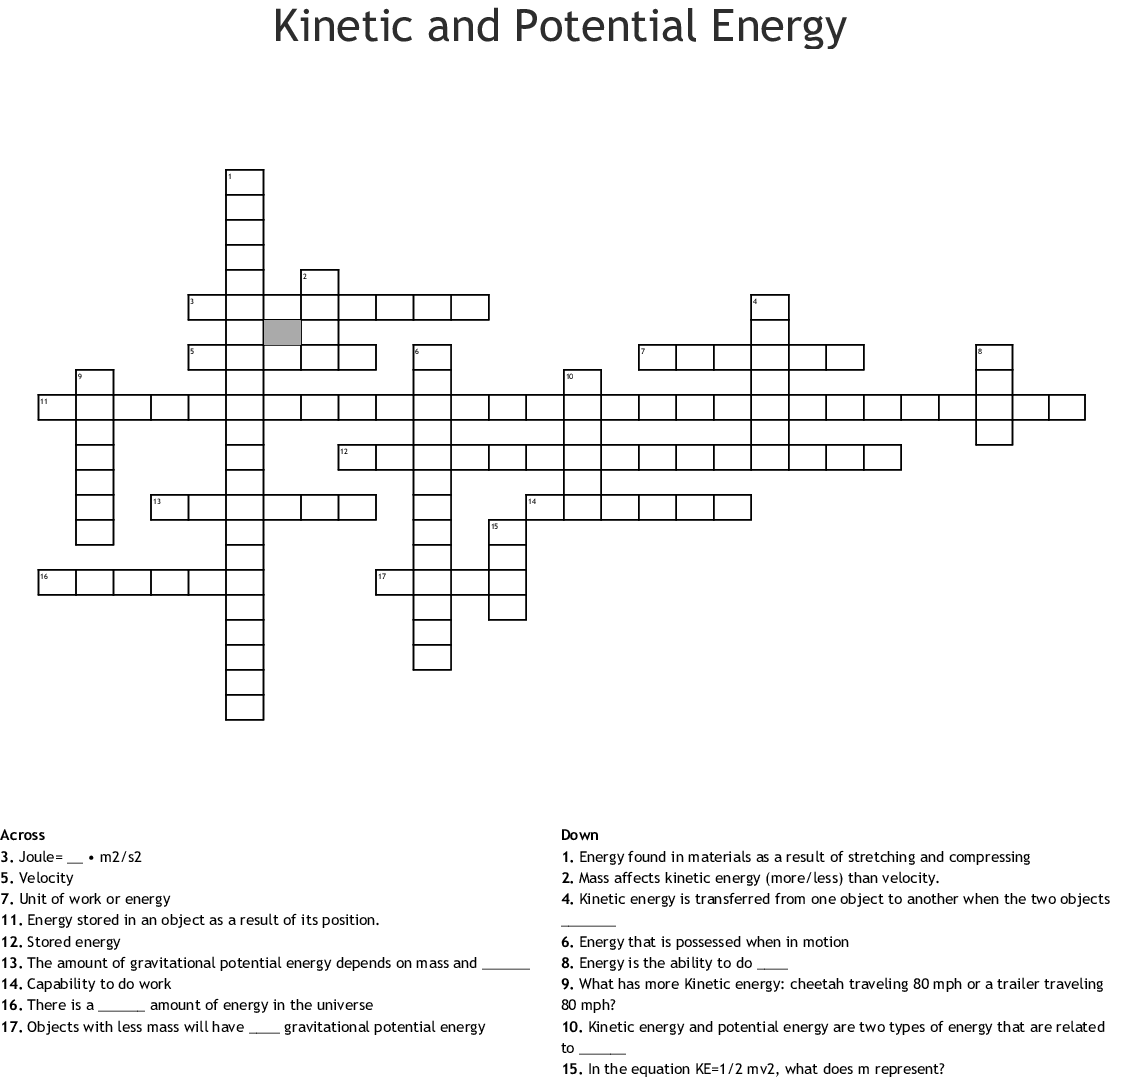 Kinetic And Potential Energy Crossword